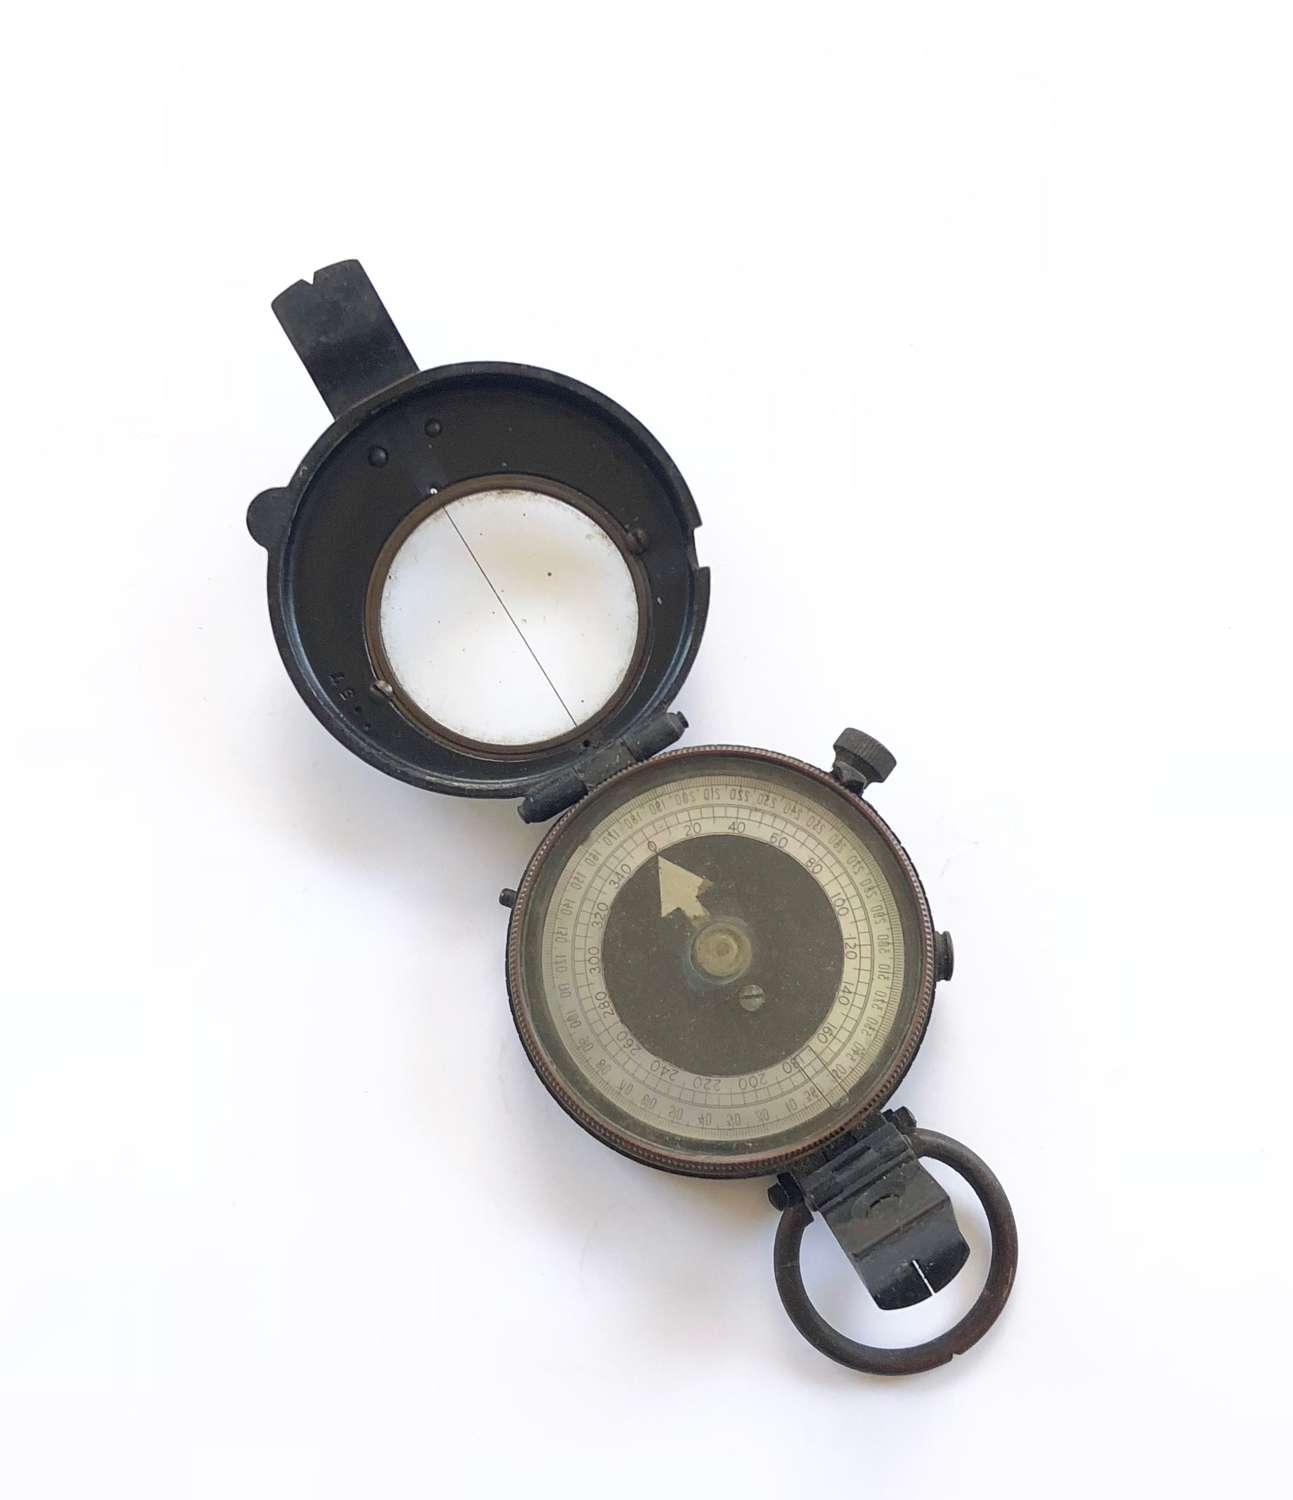 WW1 Battle of the Somme Period 1916 Marching Compass.